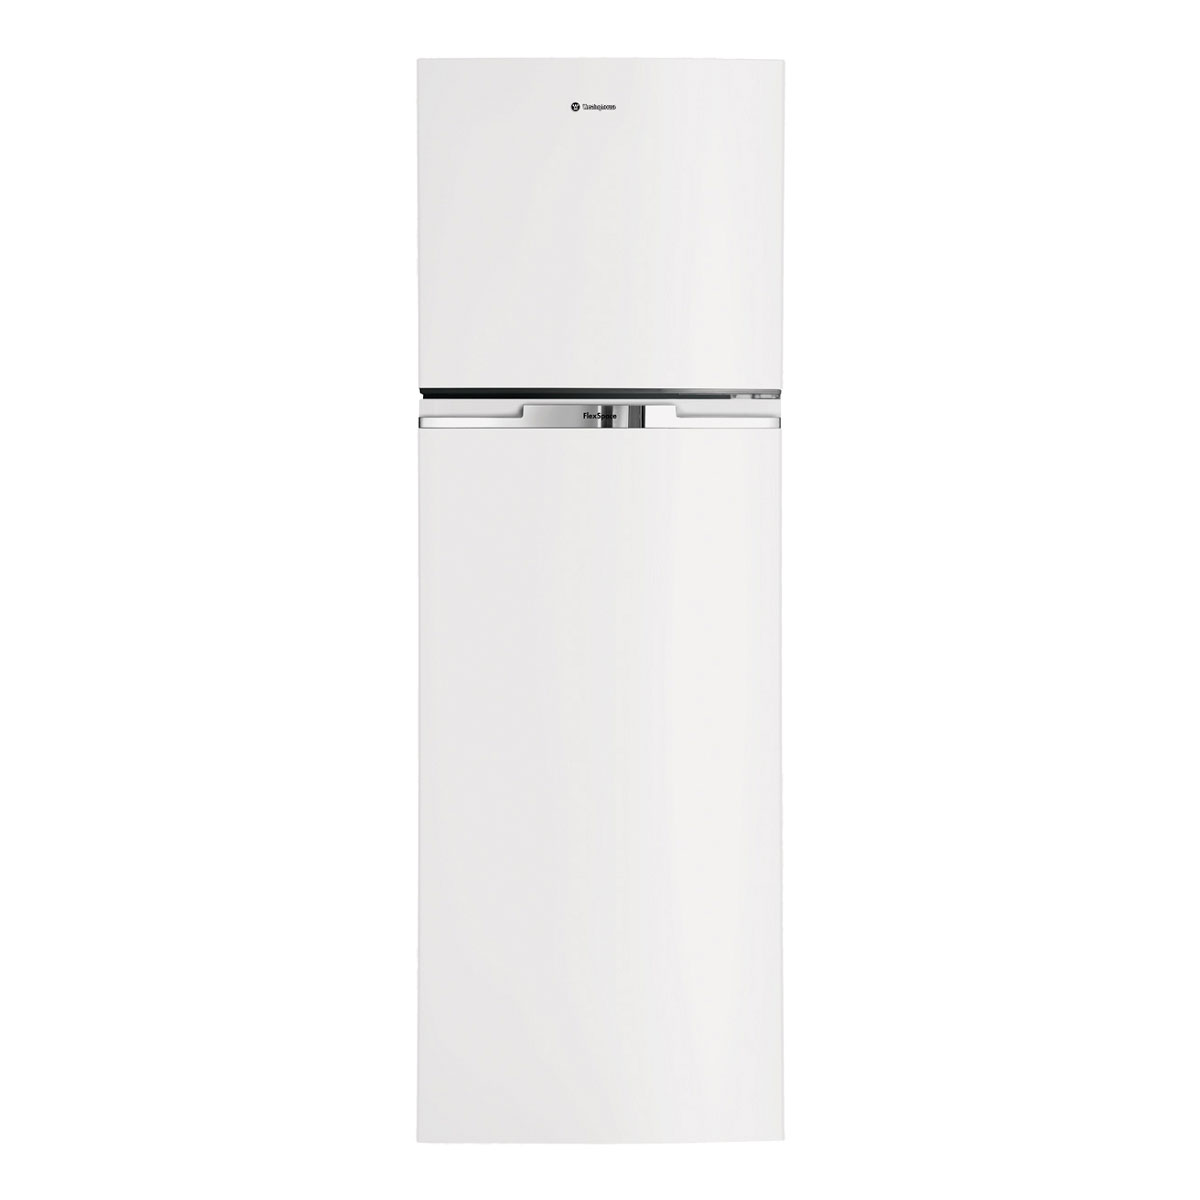 Westinghouse WTB3700WG 370L Top Mount Fridge